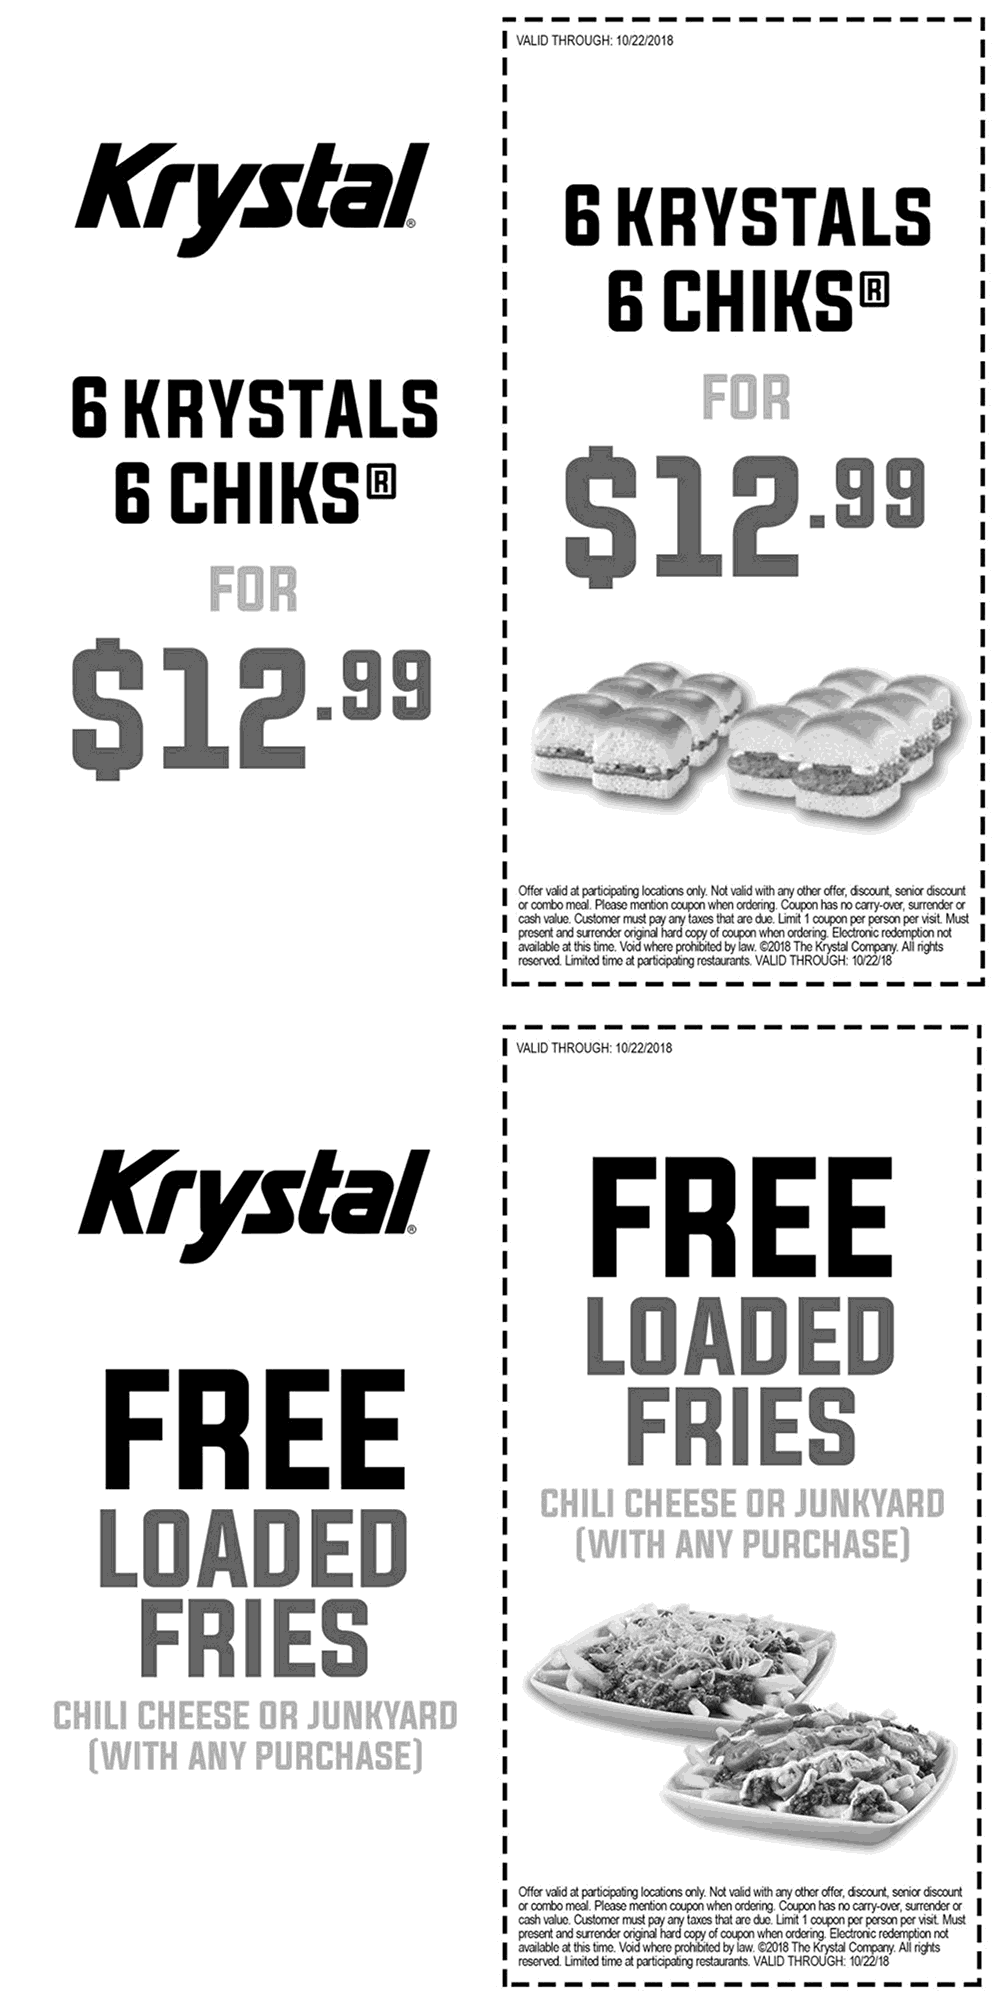 Krystal.com Promo Coupon Free loaded fries with any order at Krystal restaurants